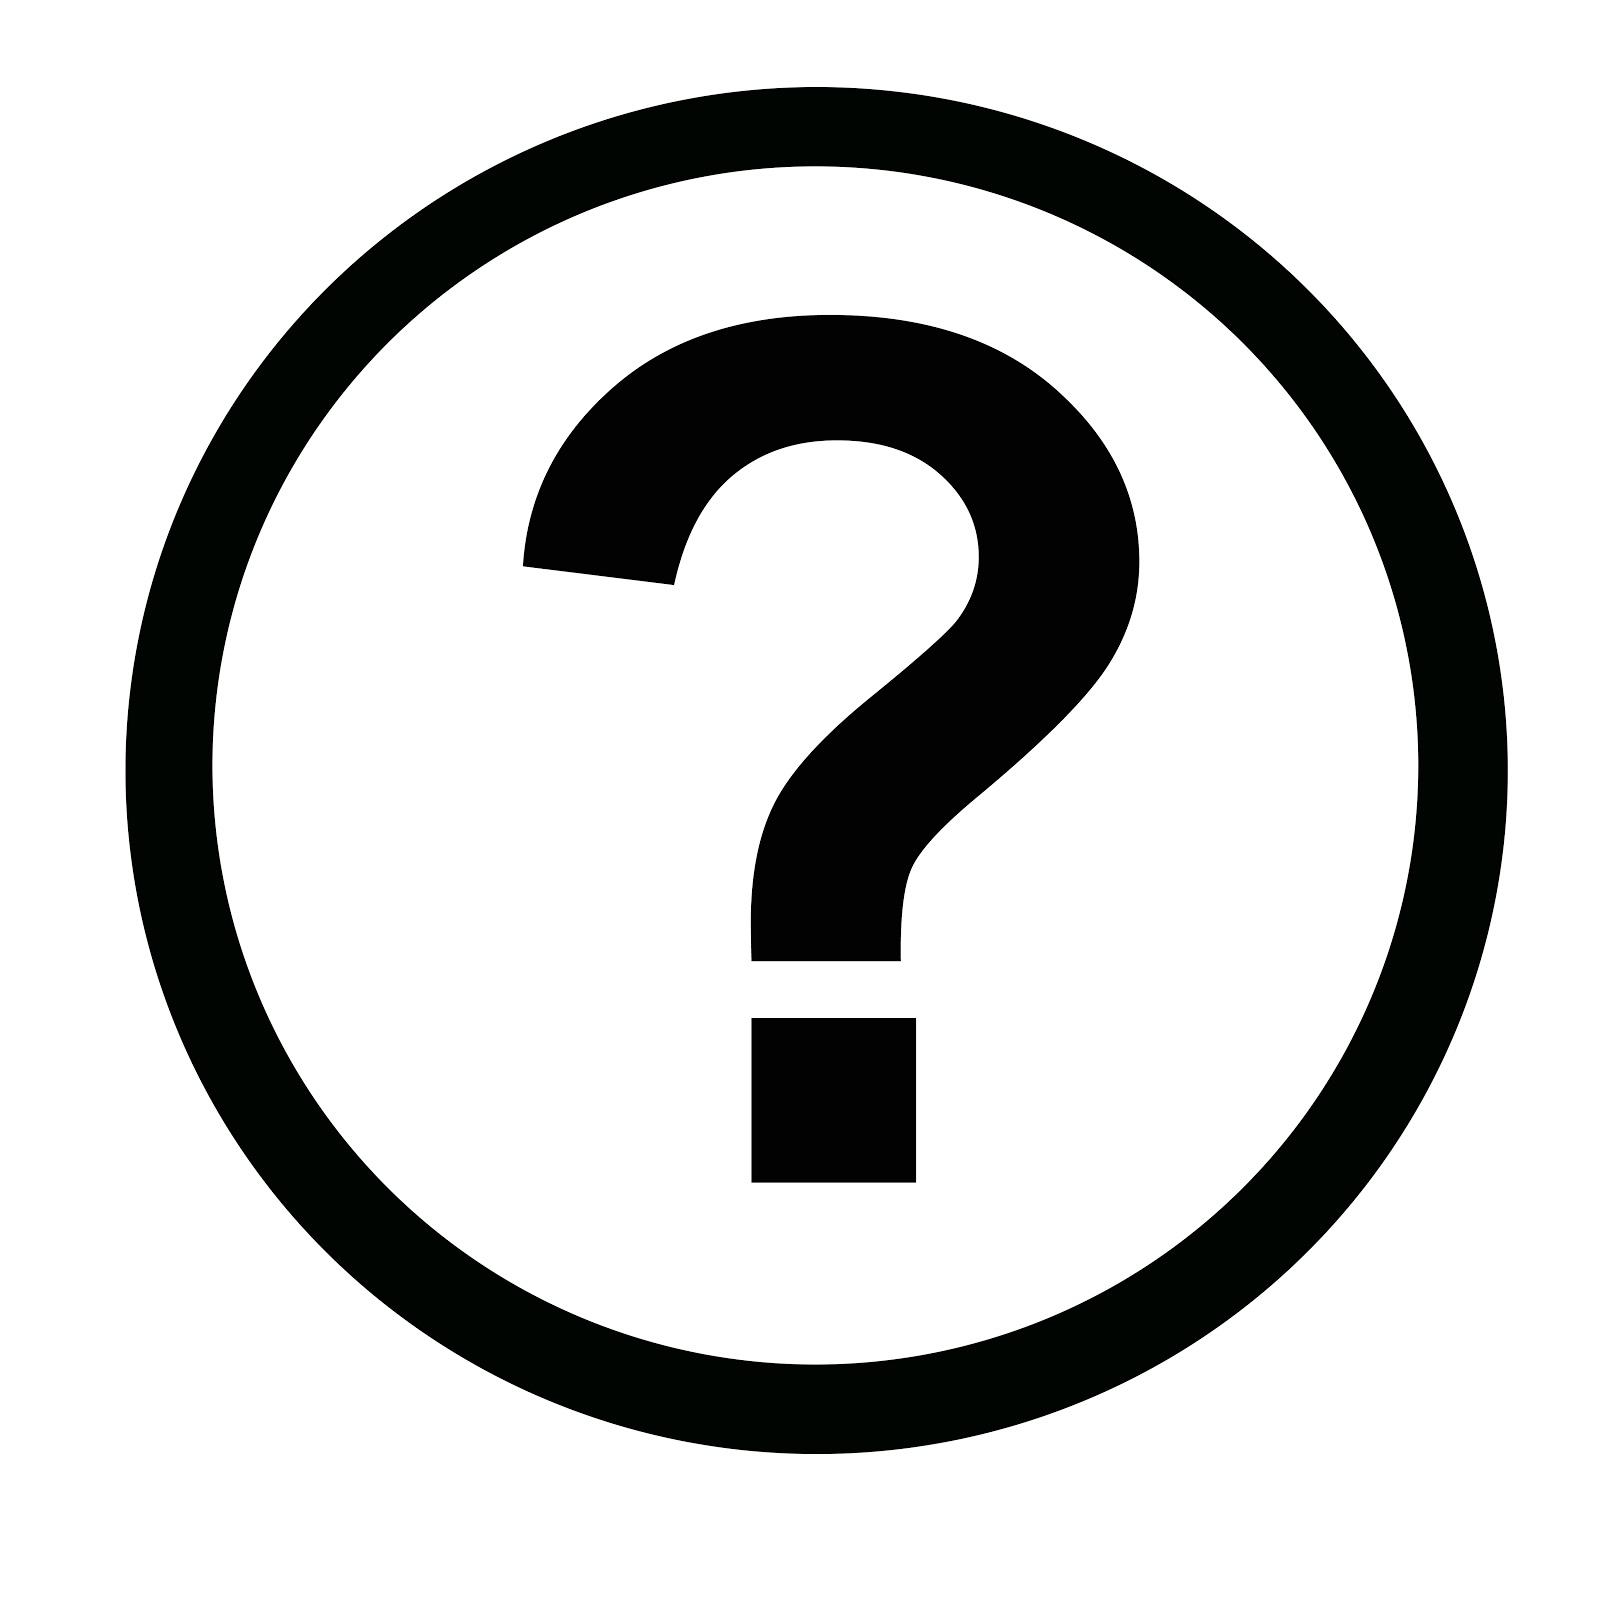 File:Icon-round-Question mark.jpg - Wikimedia Commons